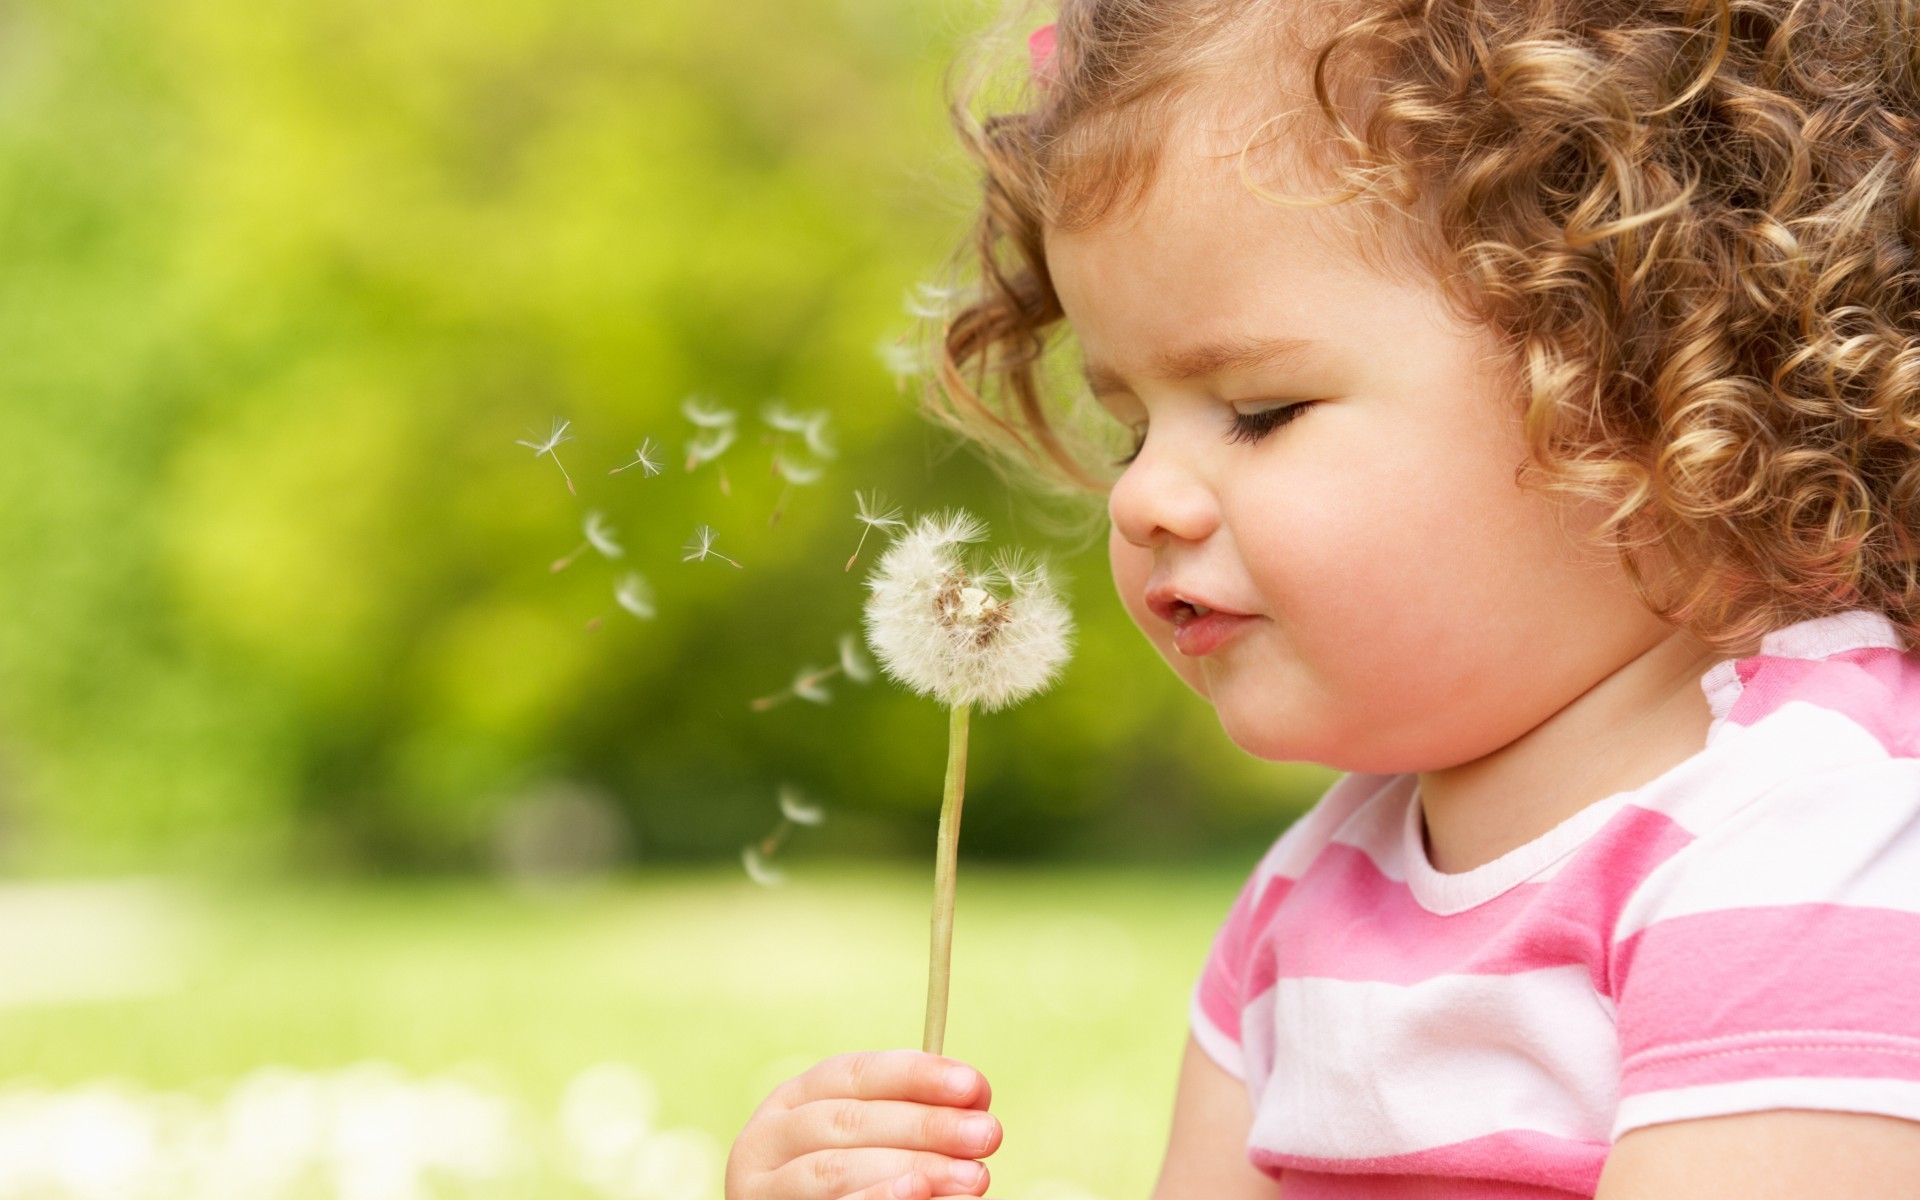 A Curly Child Blowing a Dandelion 7780.57 Kb